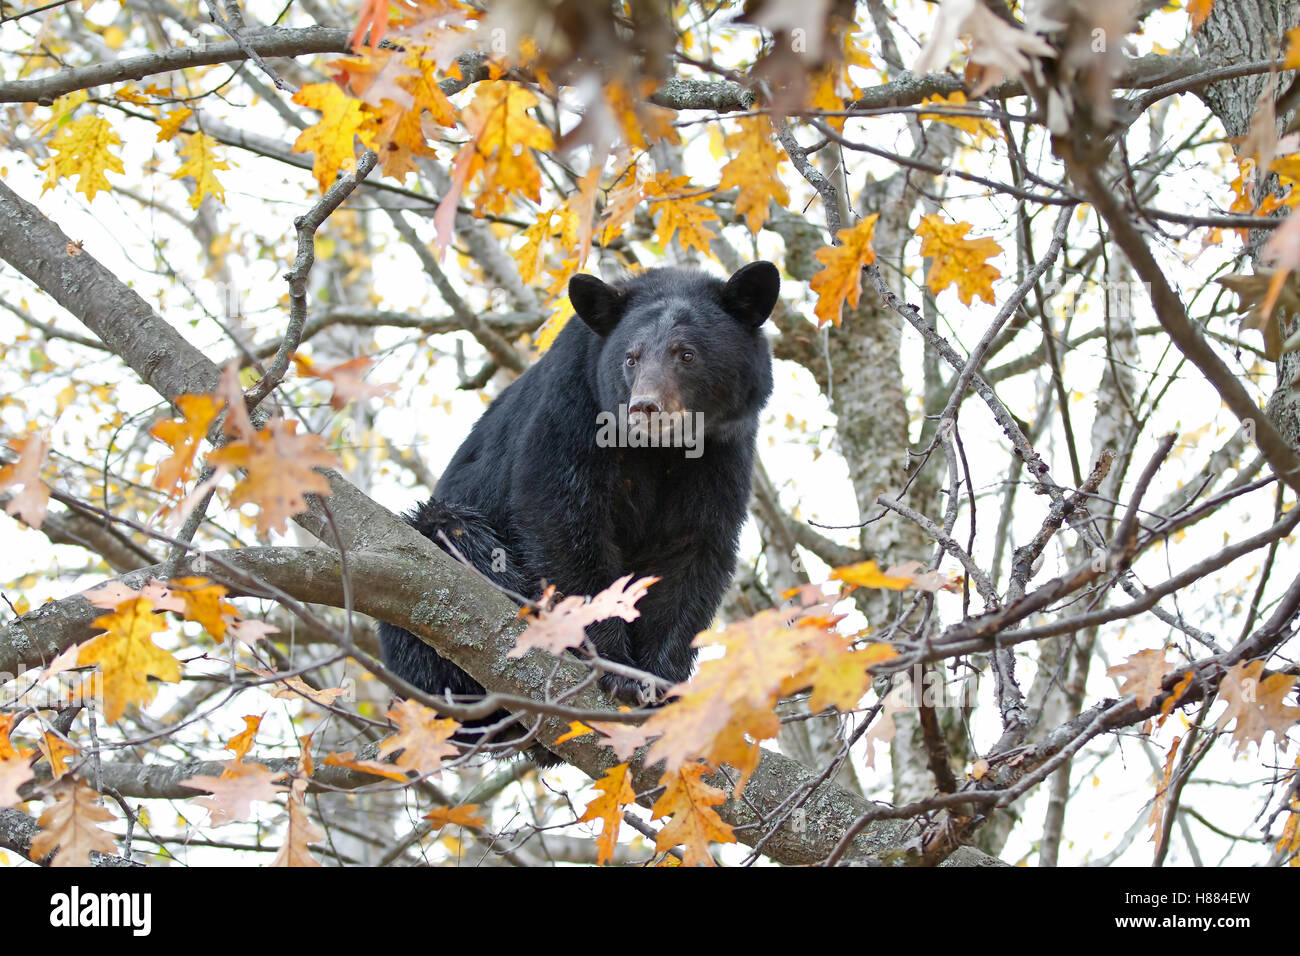 Black bear in a tree in autumn in Canada - Stock Image